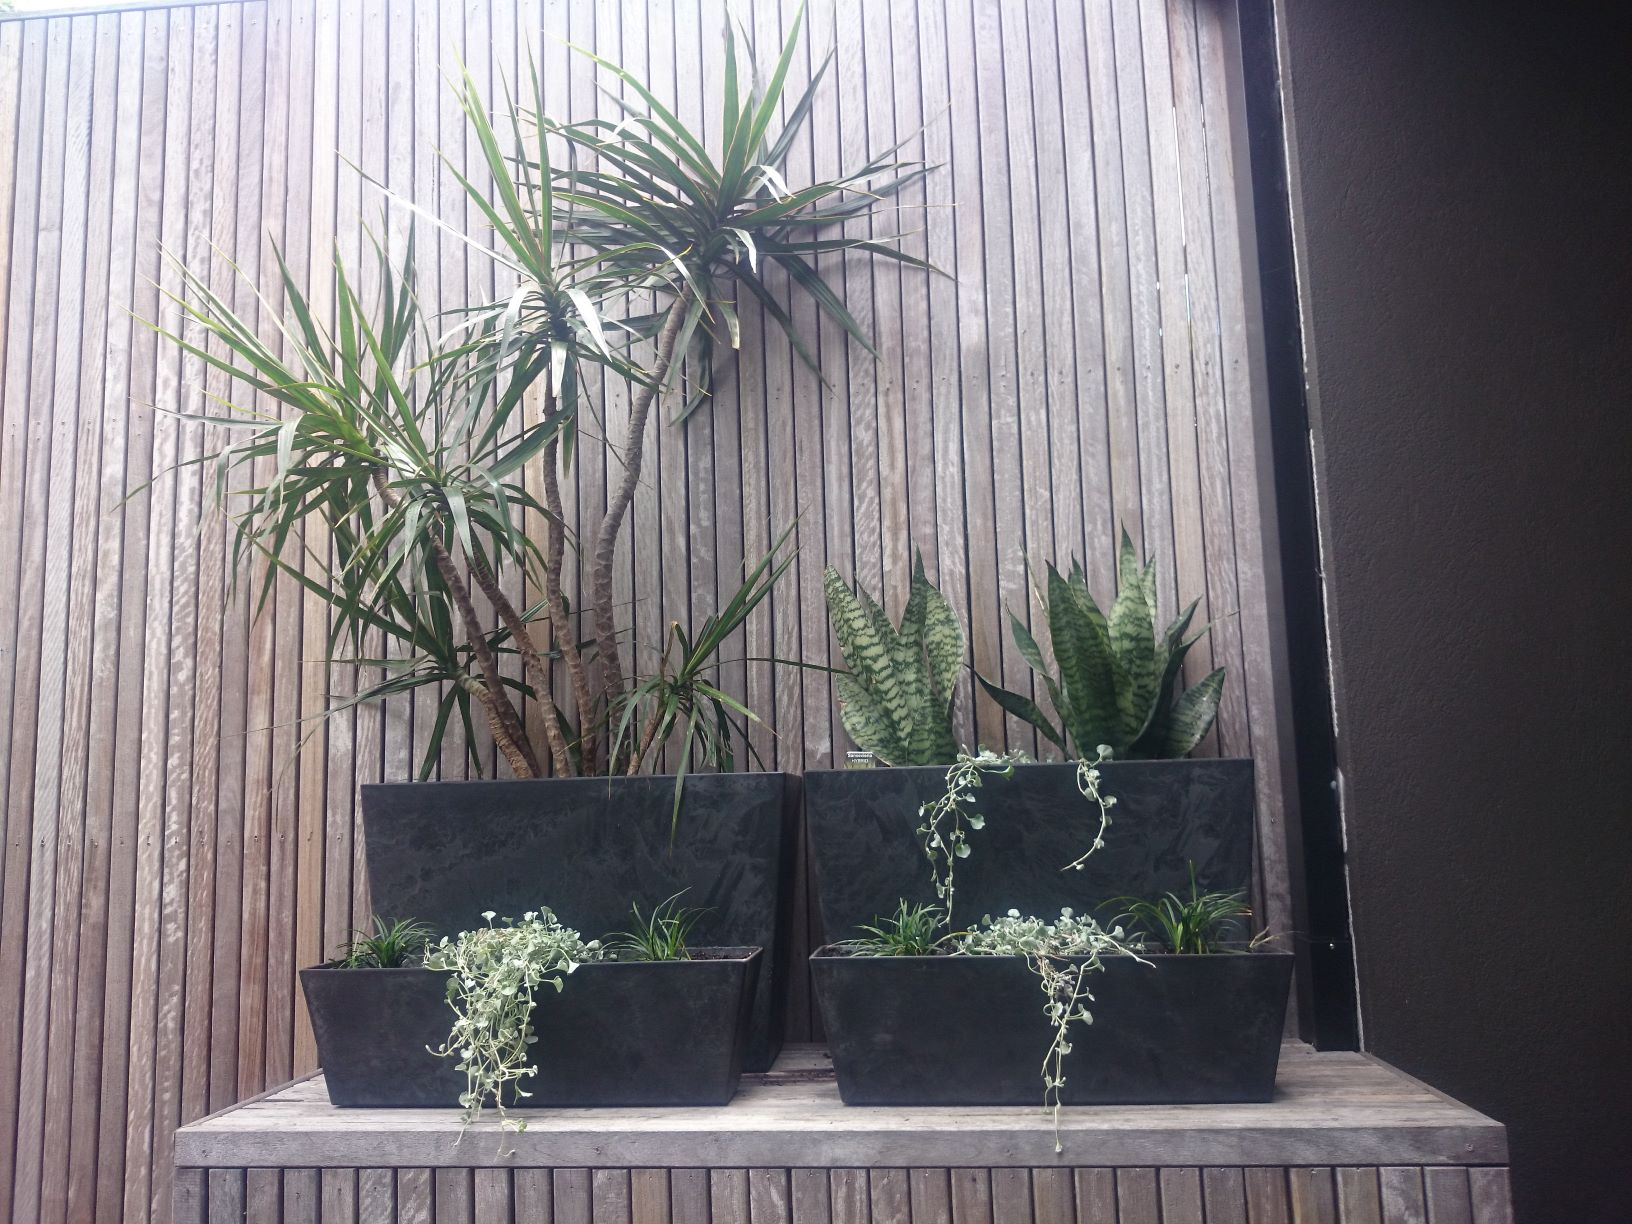 Rectangular pots, tough plants for pots, part shady plants for pots. Courtyard pots, roof top garden pots. space saving pots